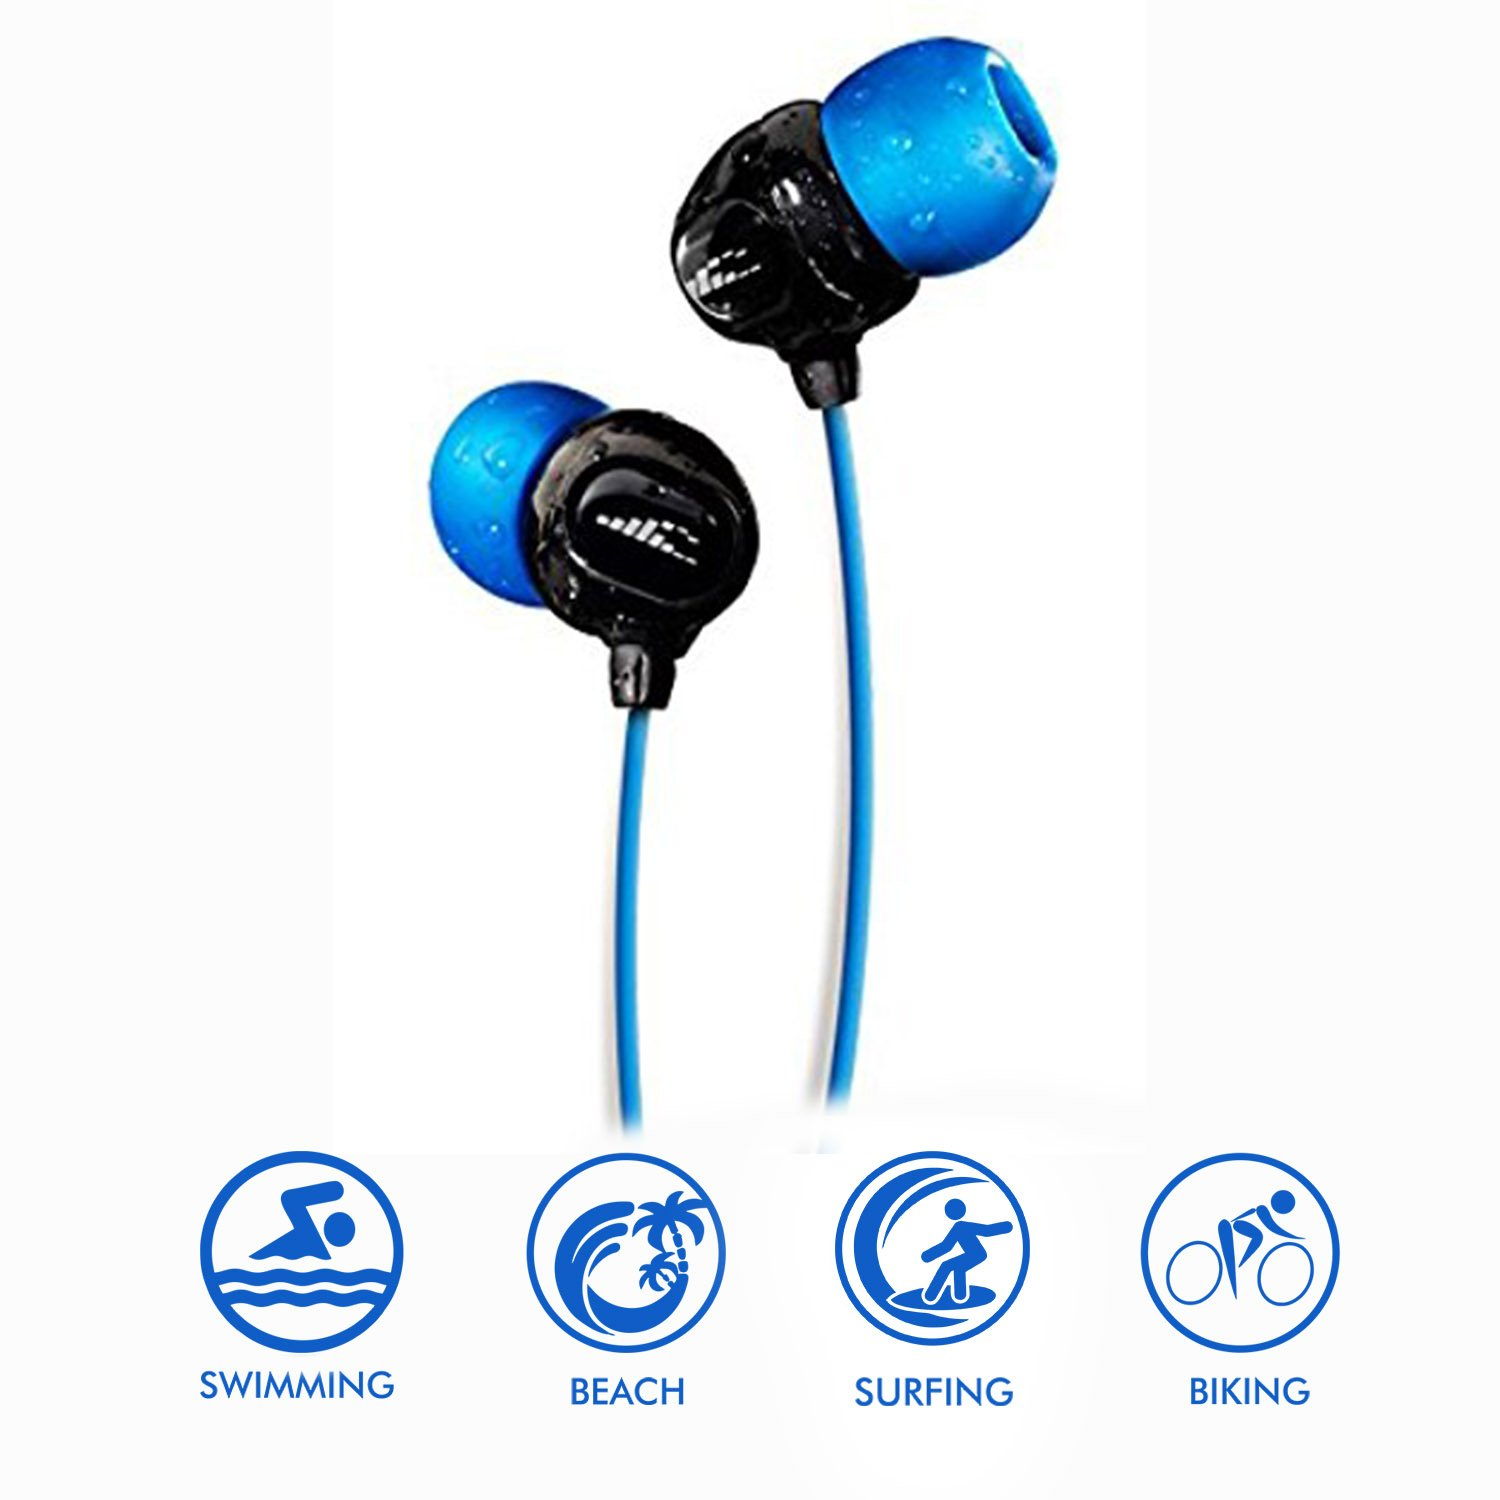 H2O Audio 100% Waterproof Headphones. Noise Canceling, Sweat Proof Surge+ Swim Headphones Perfect for Swimming & All Watersports, Black/Blue'